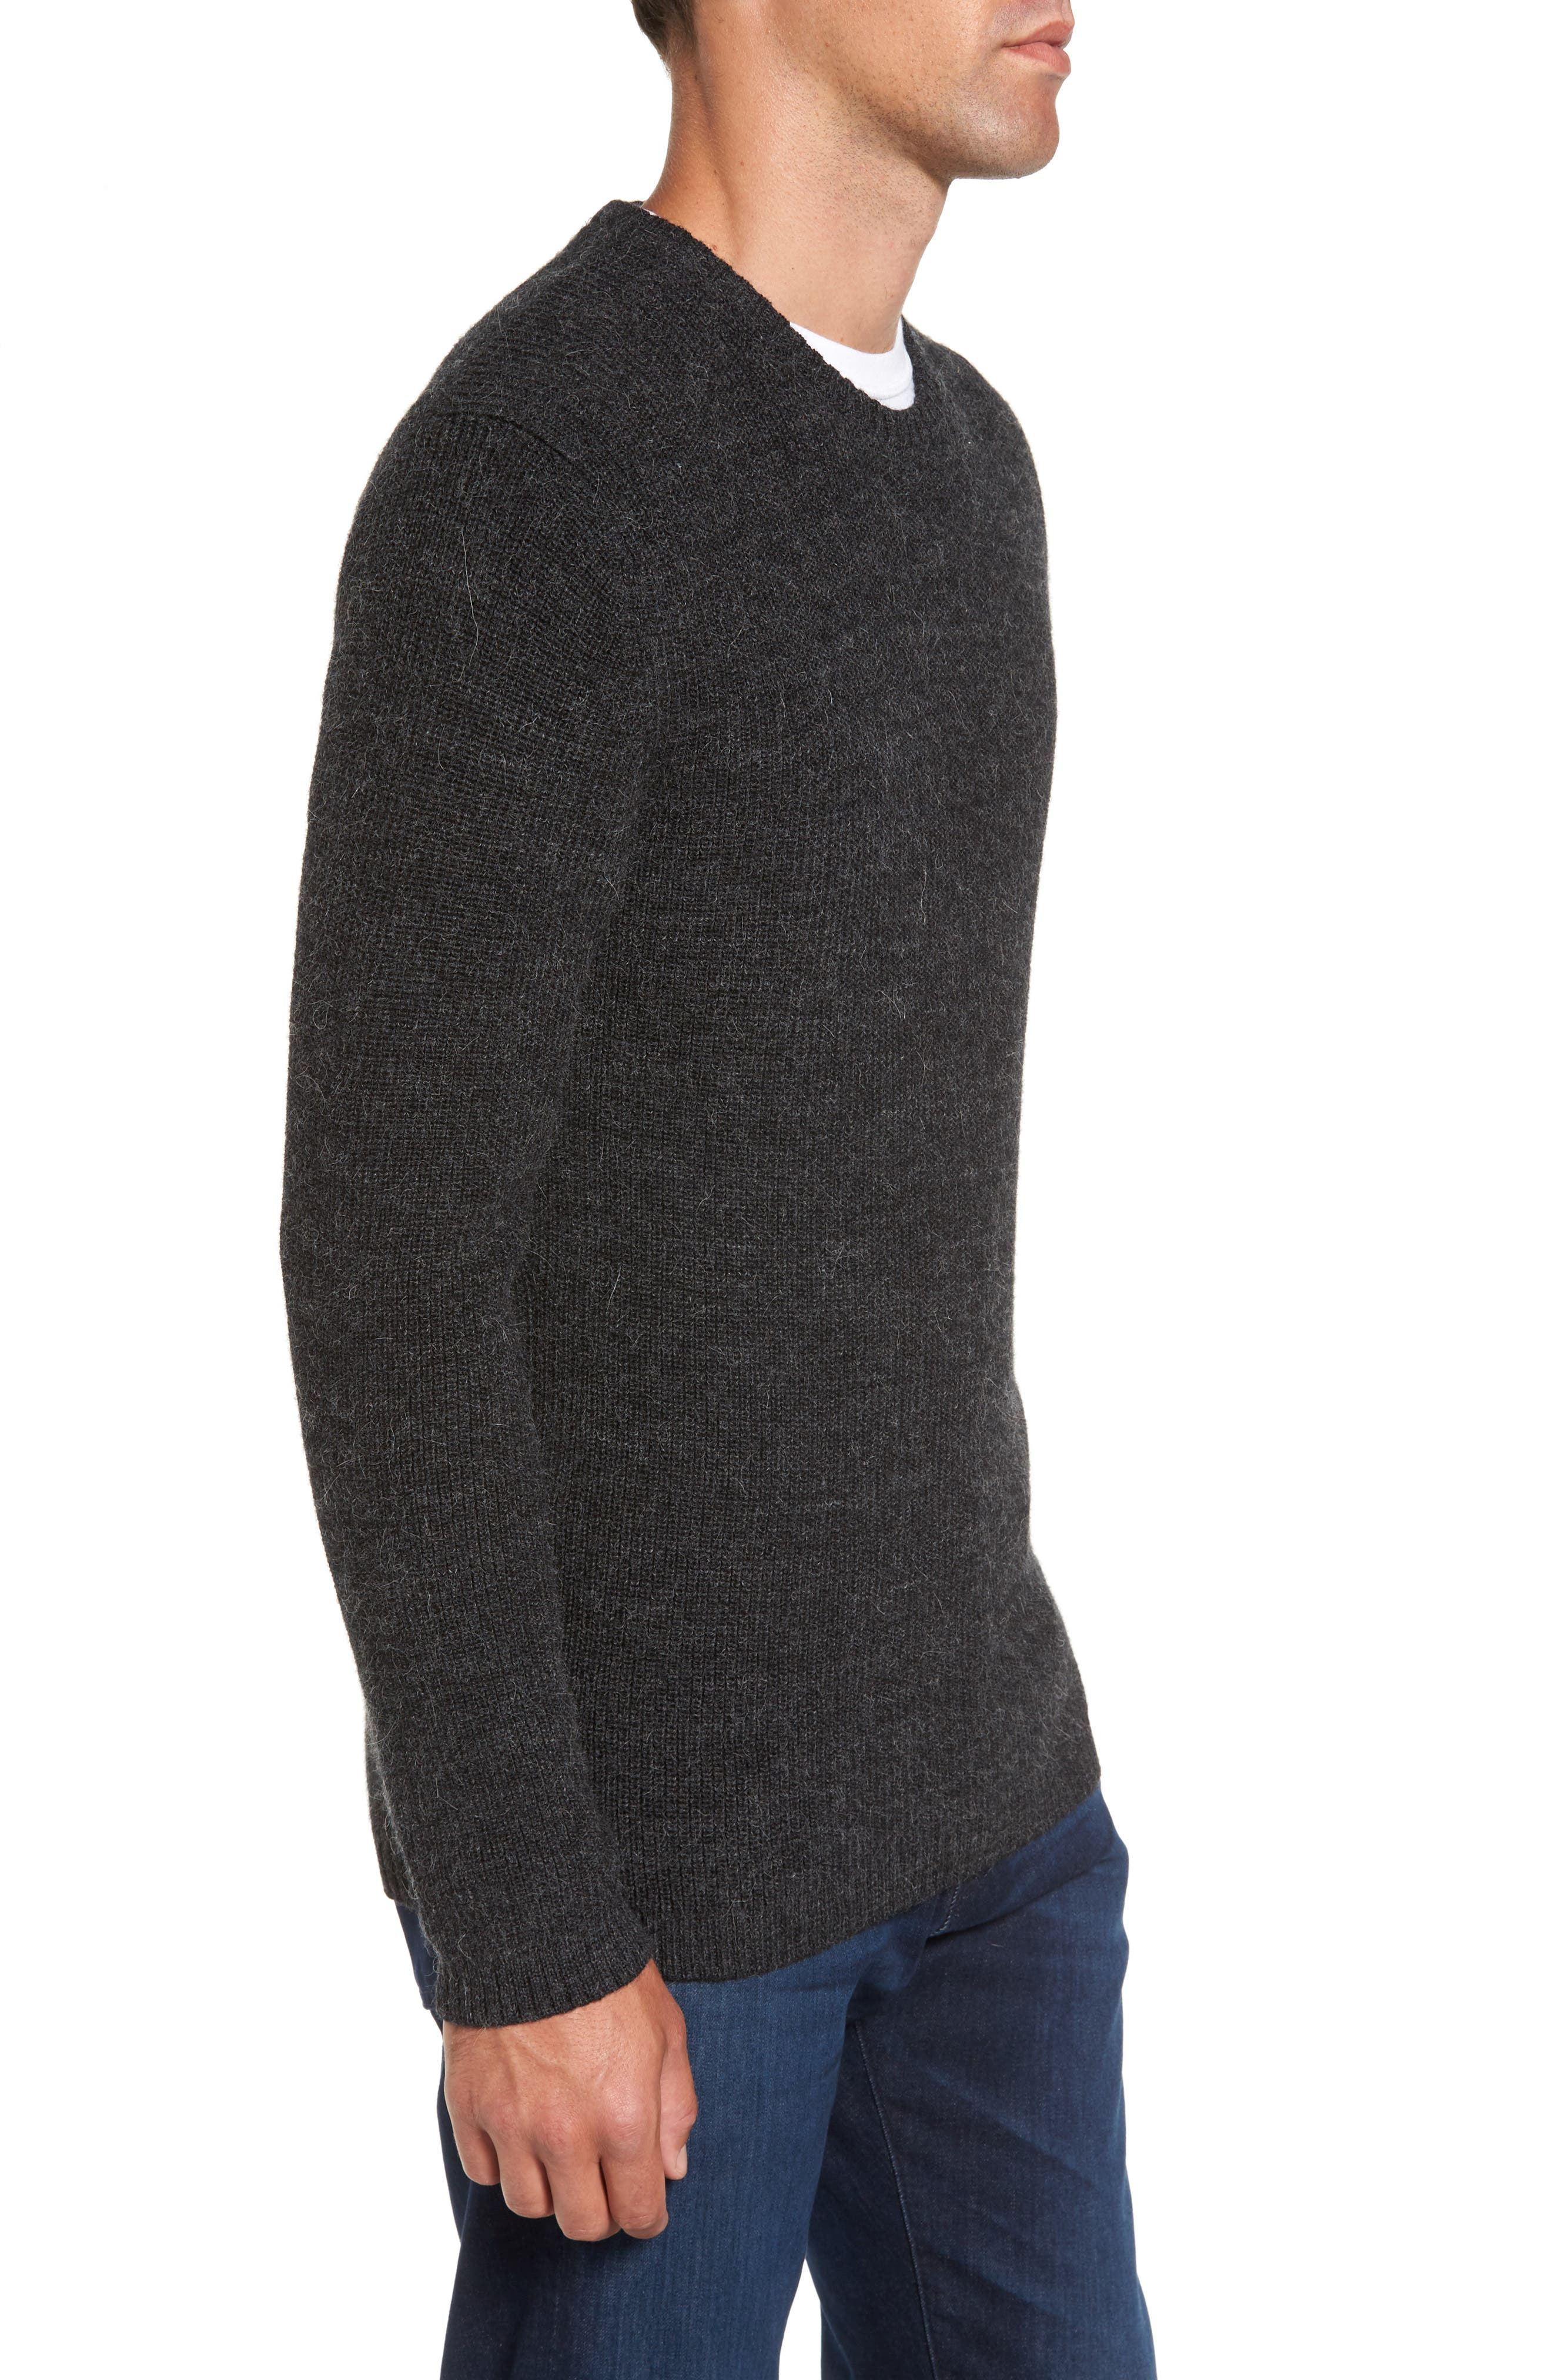 Whalers Bay Merino Wool Blend Sweater,                             Alternate thumbnail 3, color,                             Onyx